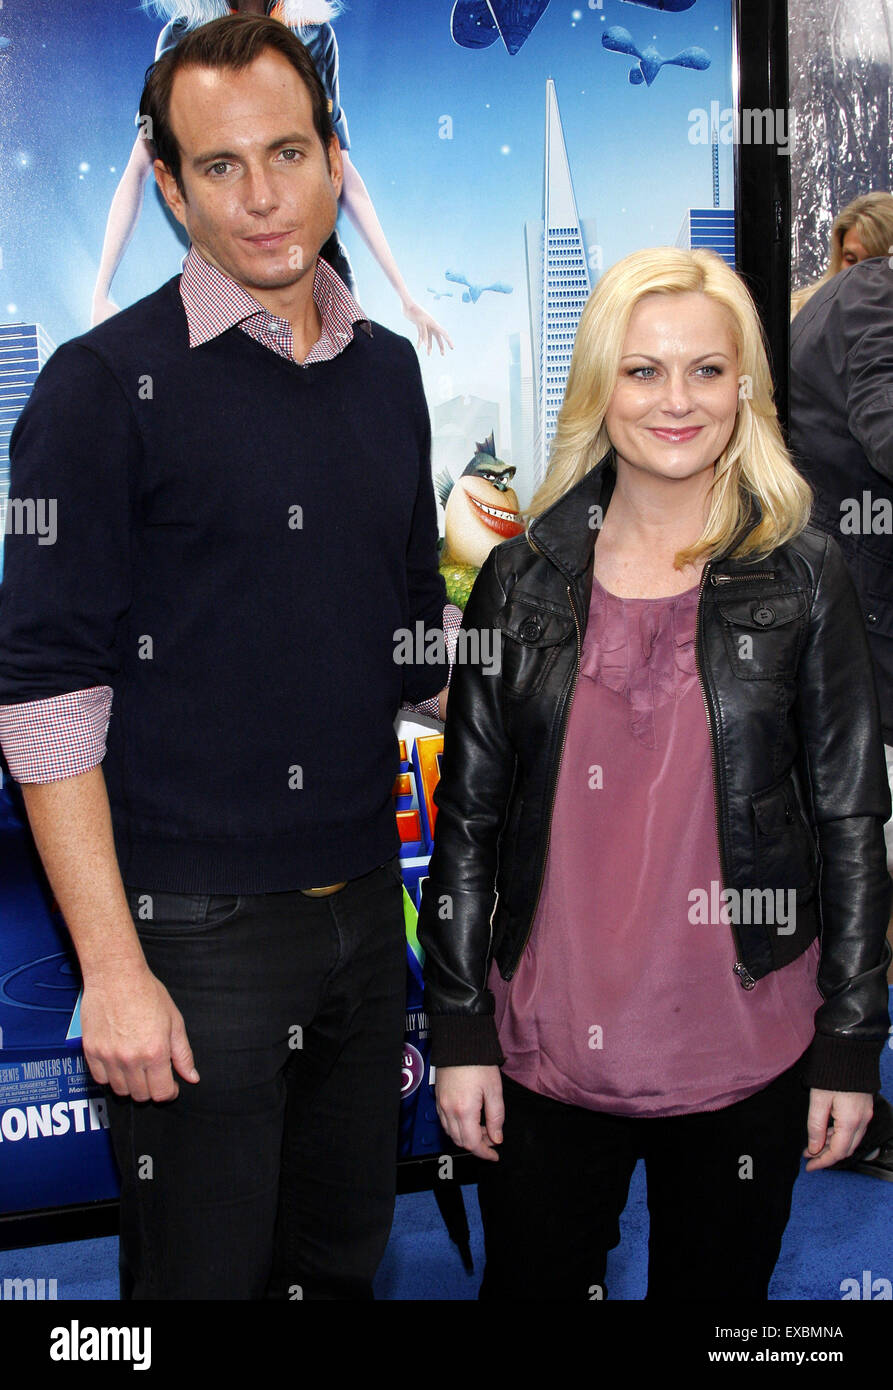 Will Arnett and Amy Poehler at the Los Angeles premiere of 'Monsters vs. Aliens'. - Stock Image